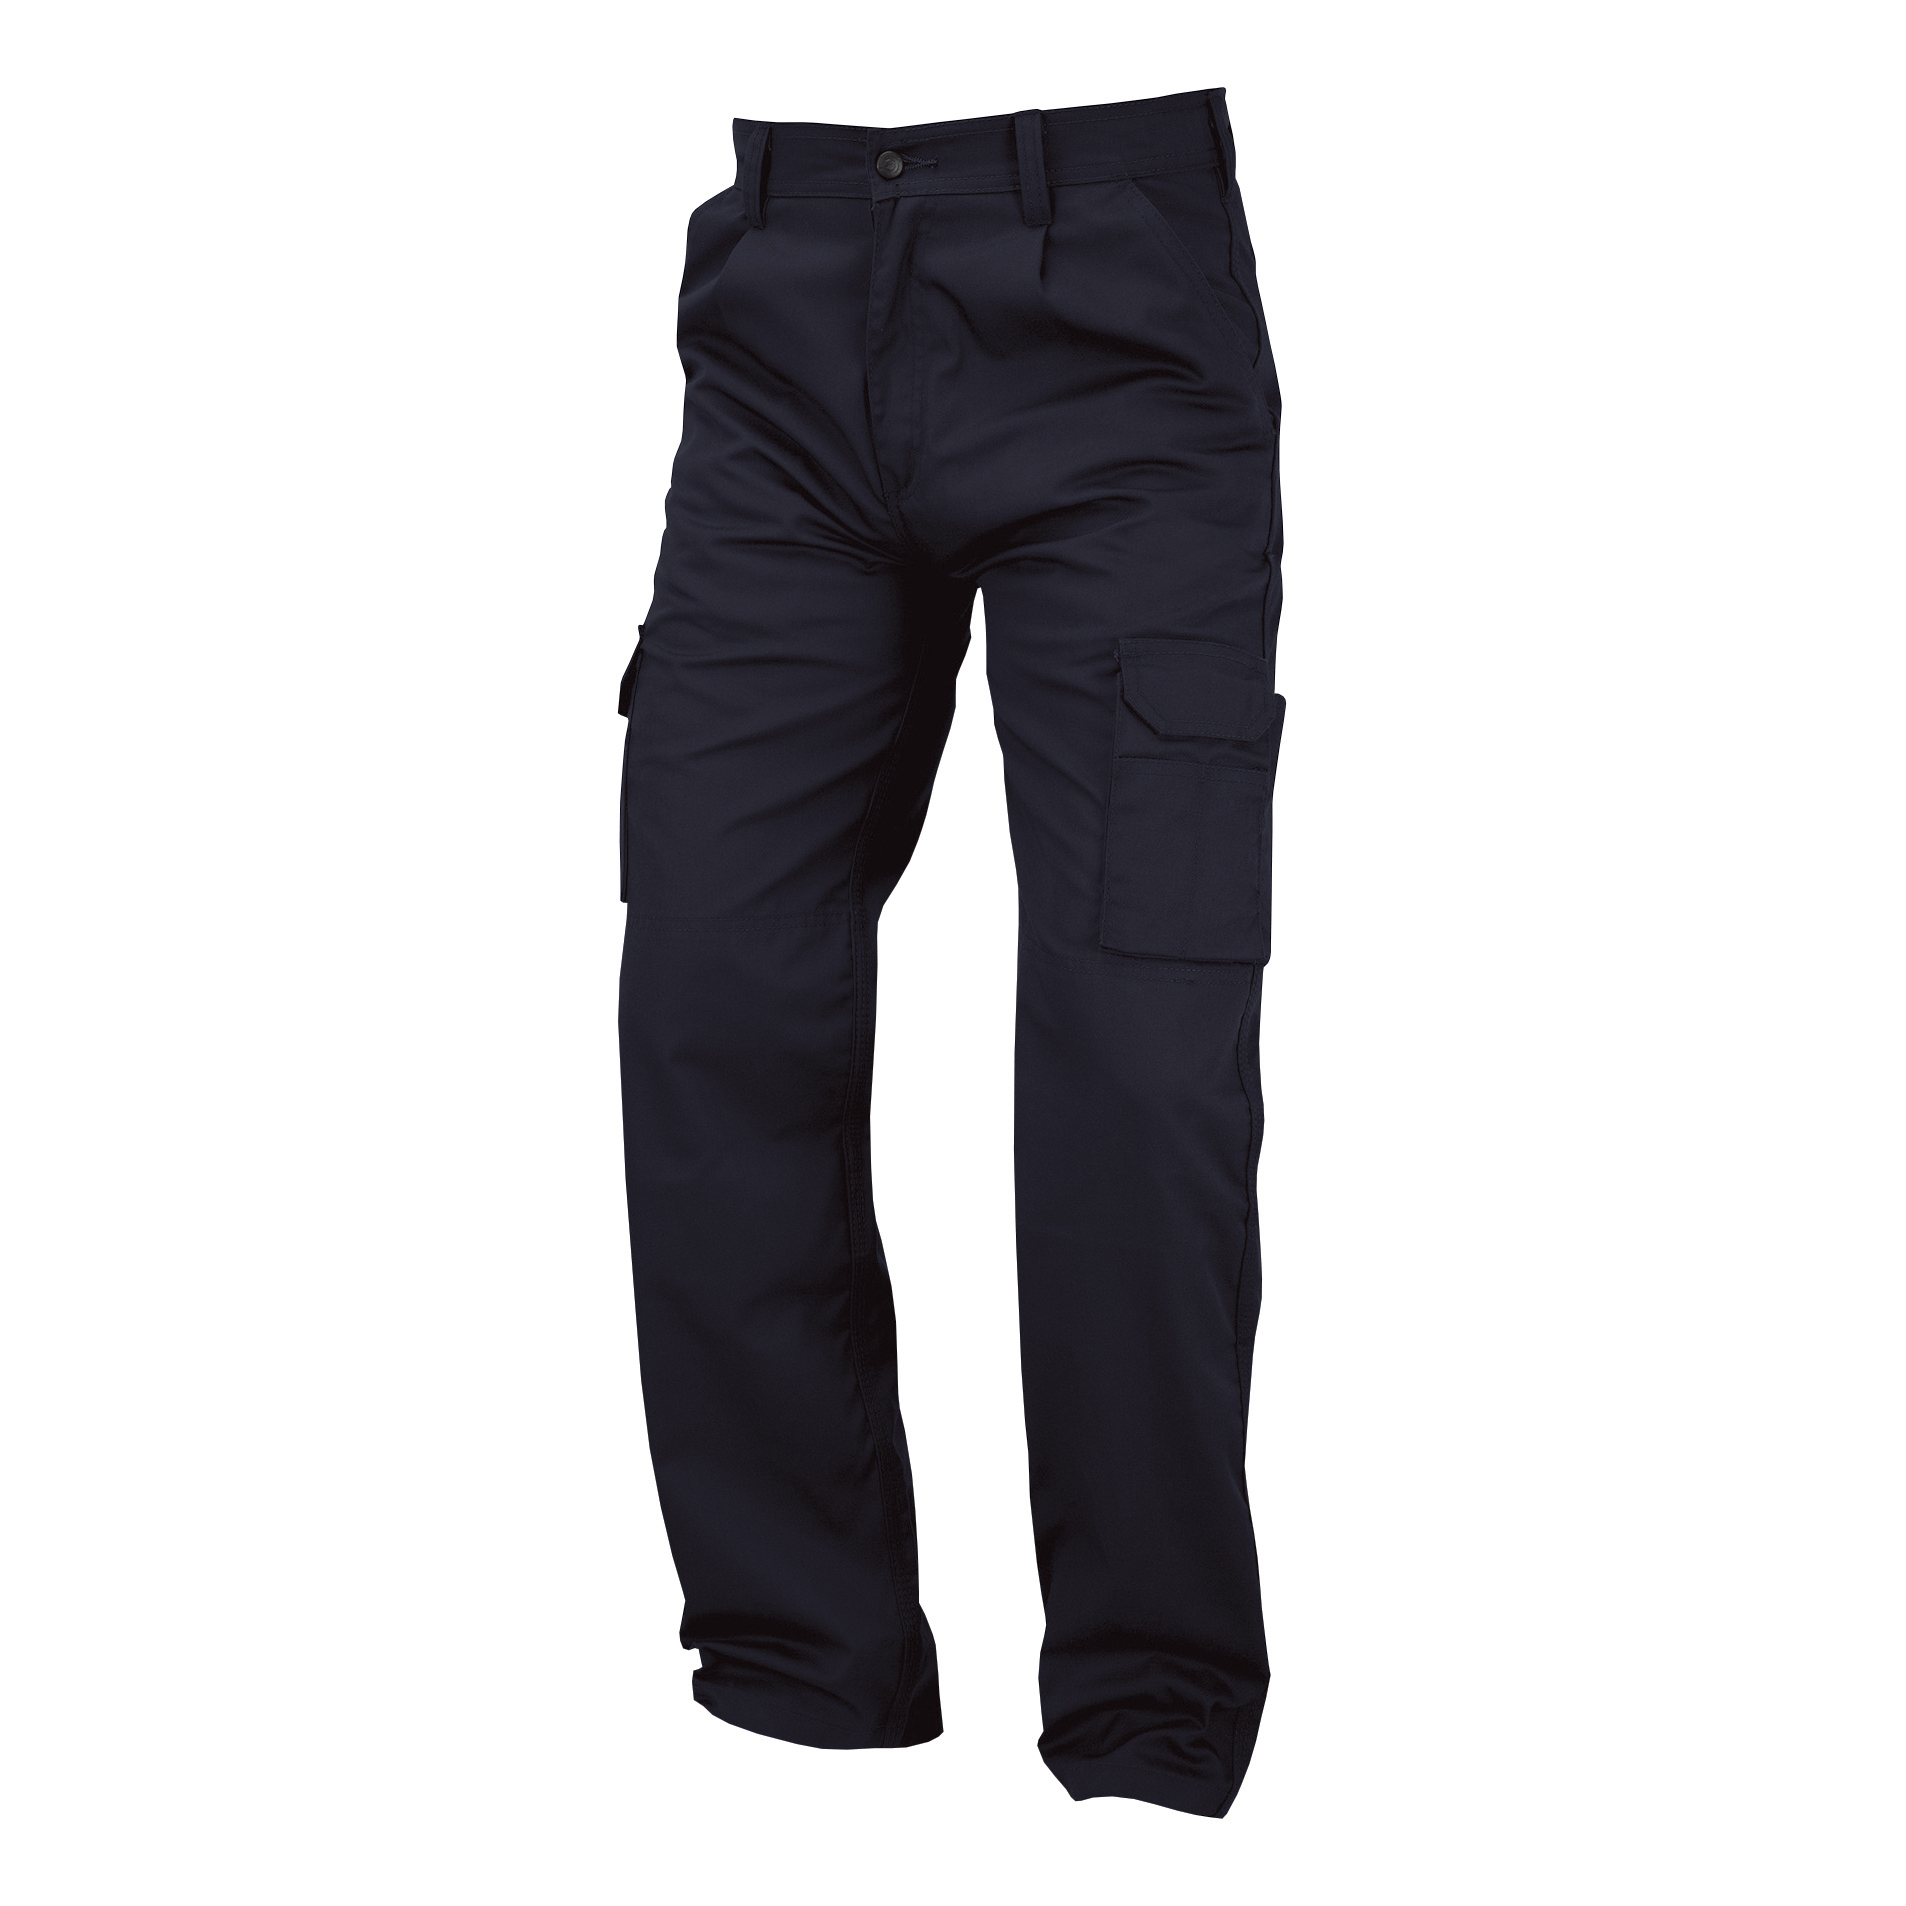 Combat Trouser Multi-functional Waist 48in Leg 29in Navy Ref PCTHWN48S *Approx 3 Day Leadtime*